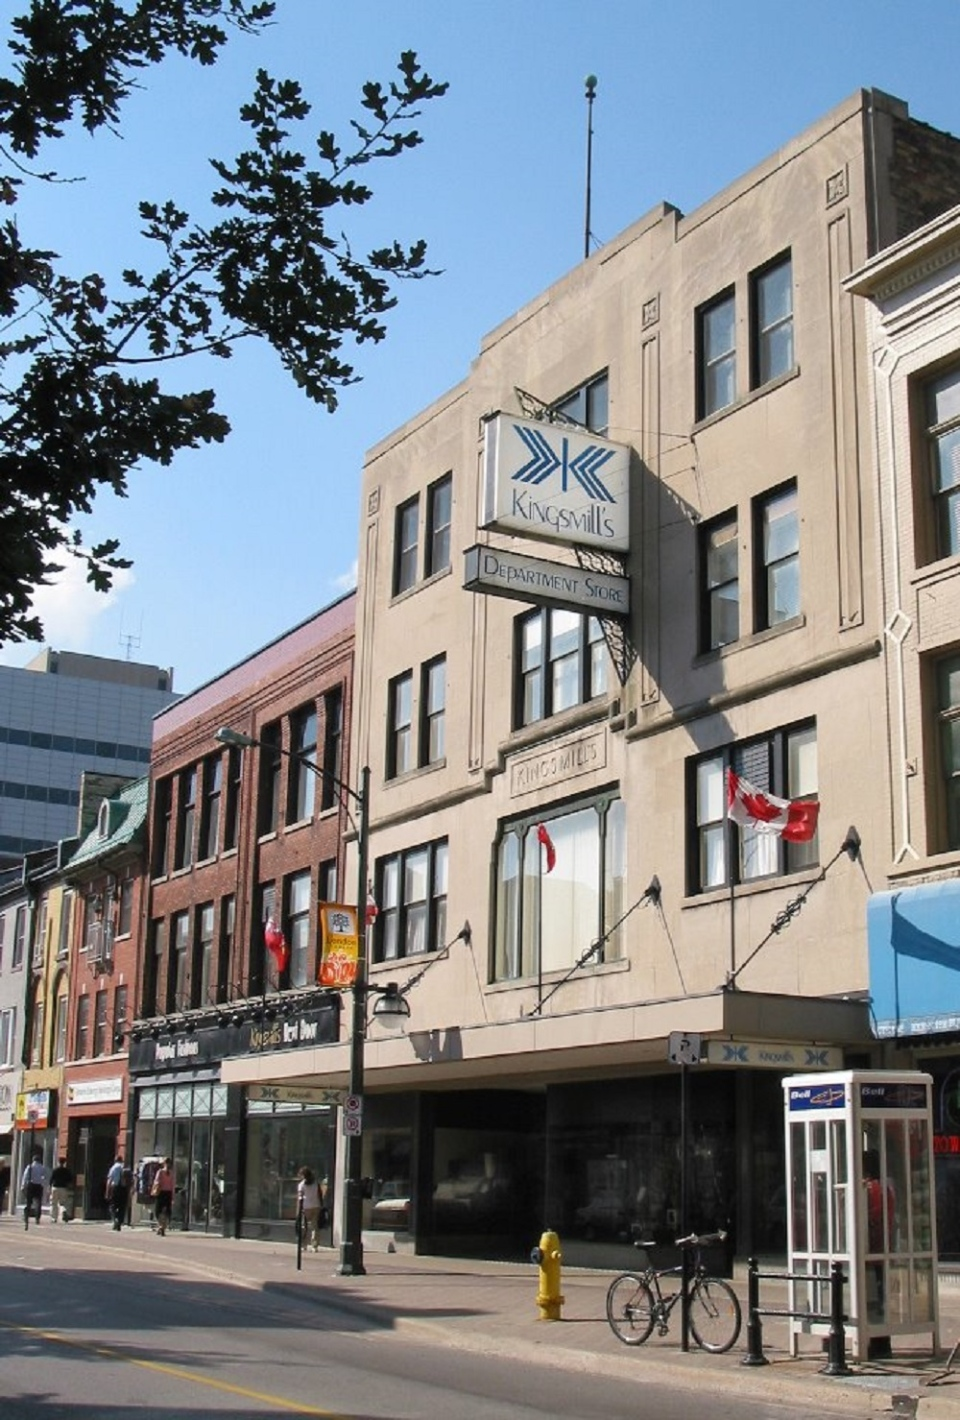 Kingsmill's department store is shown on Dundas Street in London, Ont. (Facebook)